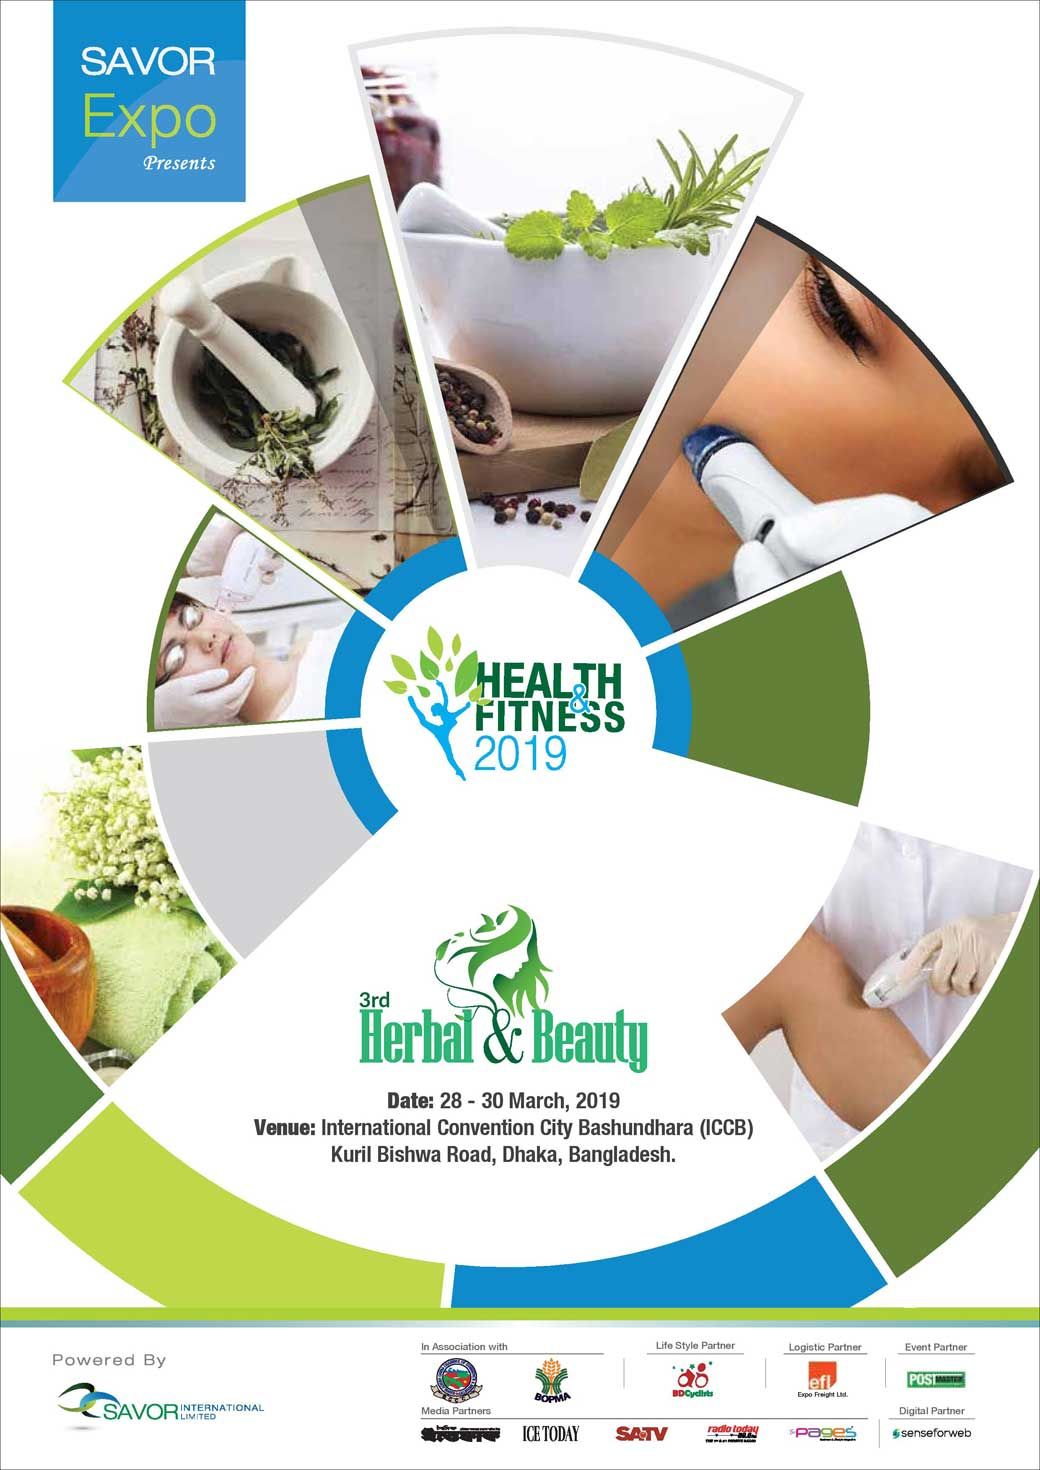 Herbal & Beauty Show 2019 - Exhibition in Bangladesh